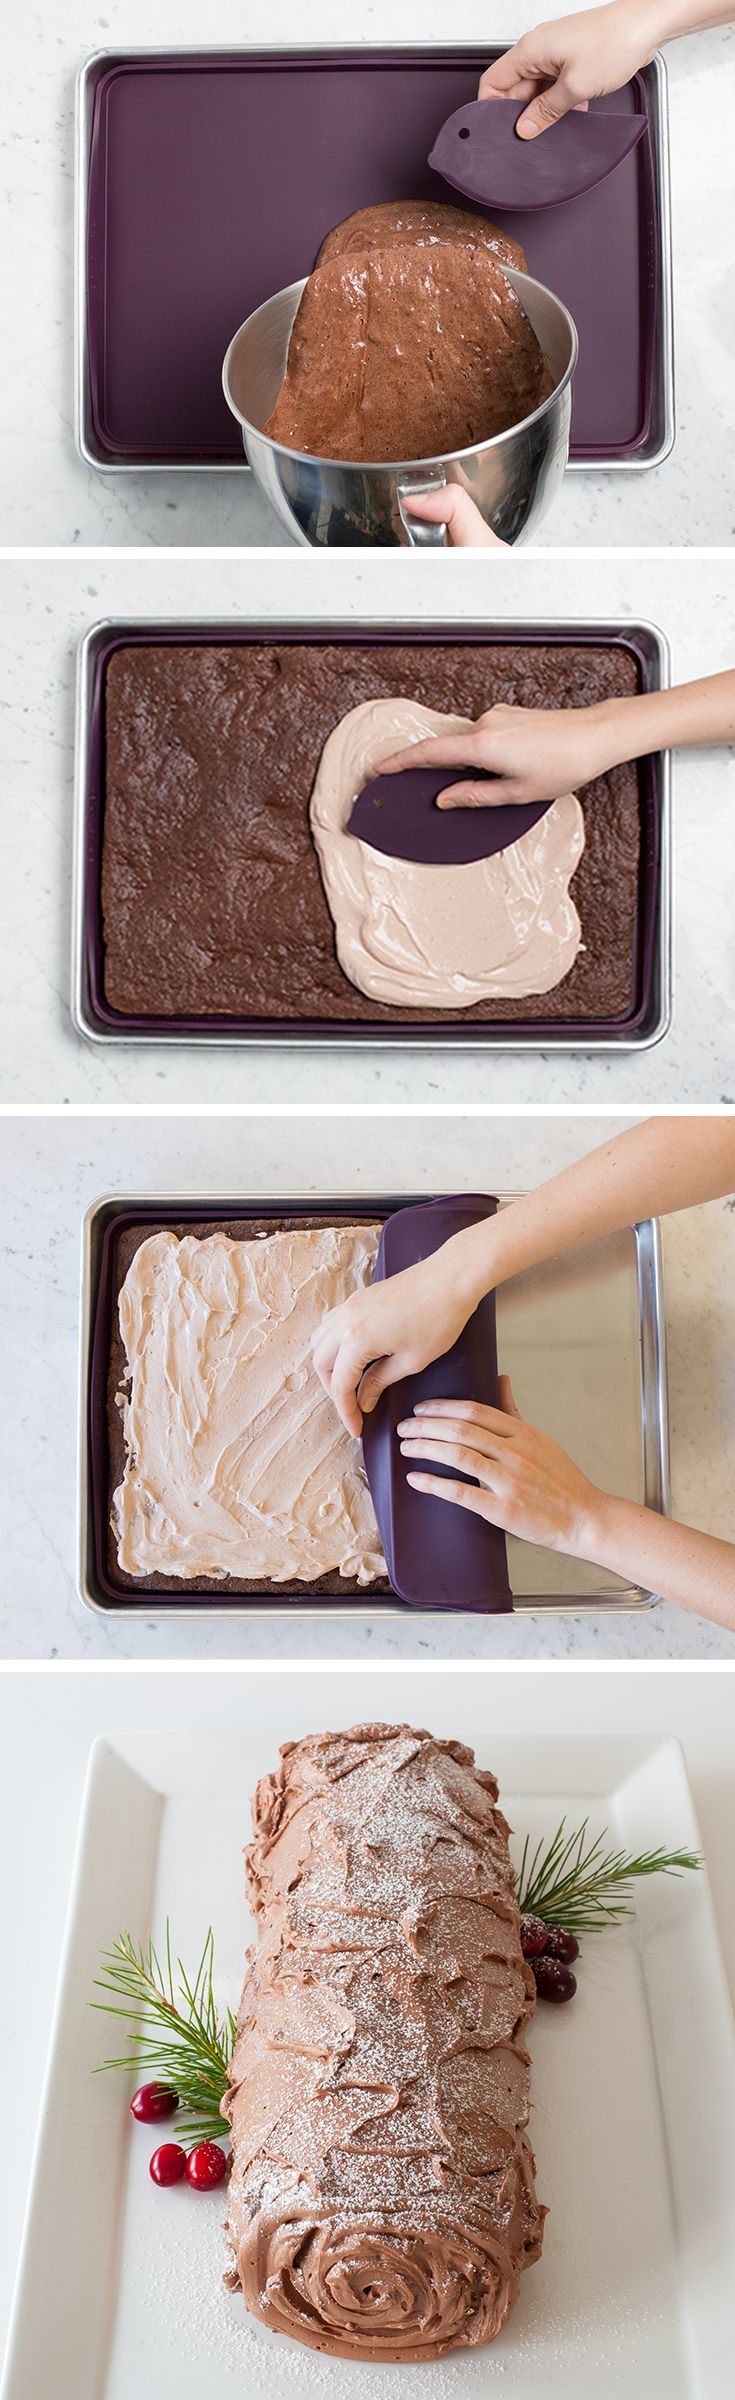 #Epicure Bake & Roll: A multi-purpose, flexible, non-stick baking mat for rolled cakes, roulades, and cookies.